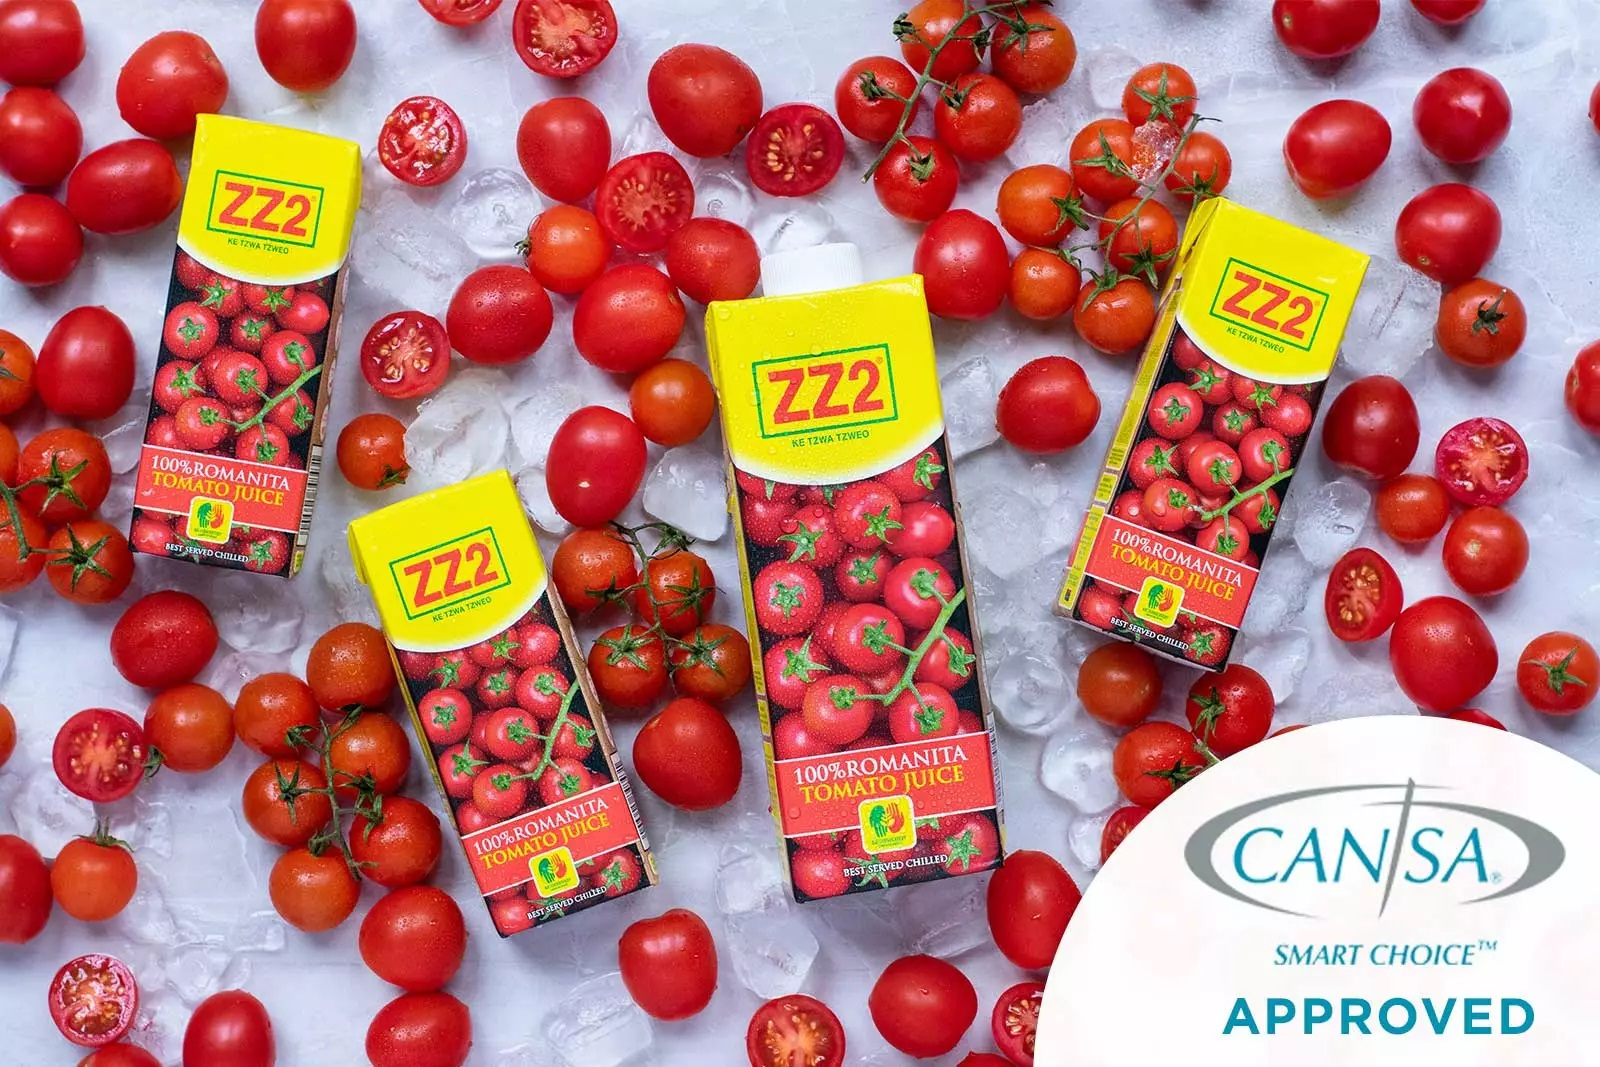 zz2 Tomato cansa approved